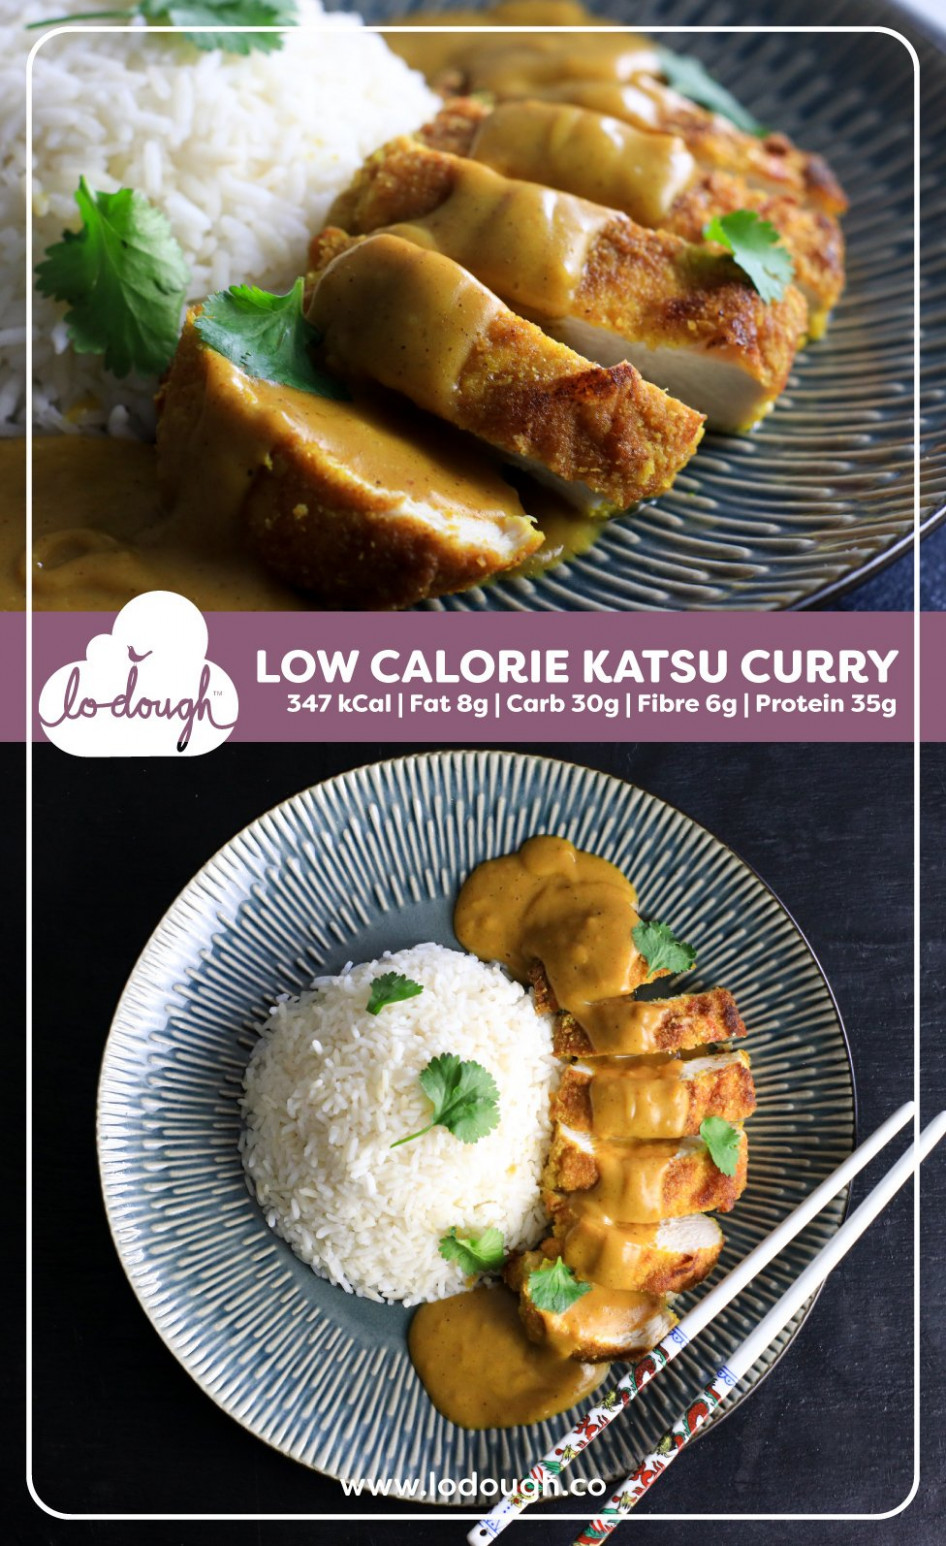 Low-Calorie Katsu Chicken Curry - low fat recipes chicken